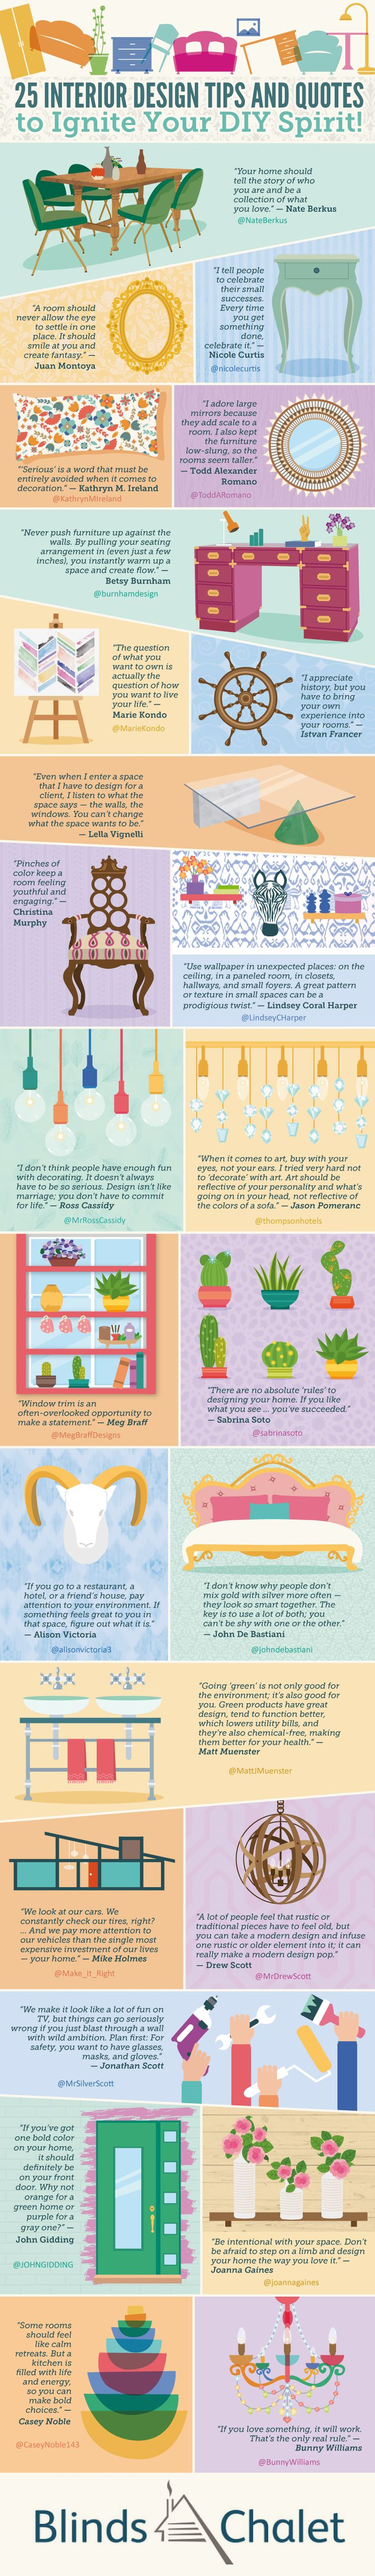 25 Interior Design Tips And Quotes To Ignite Your DIY Spirit Infographic